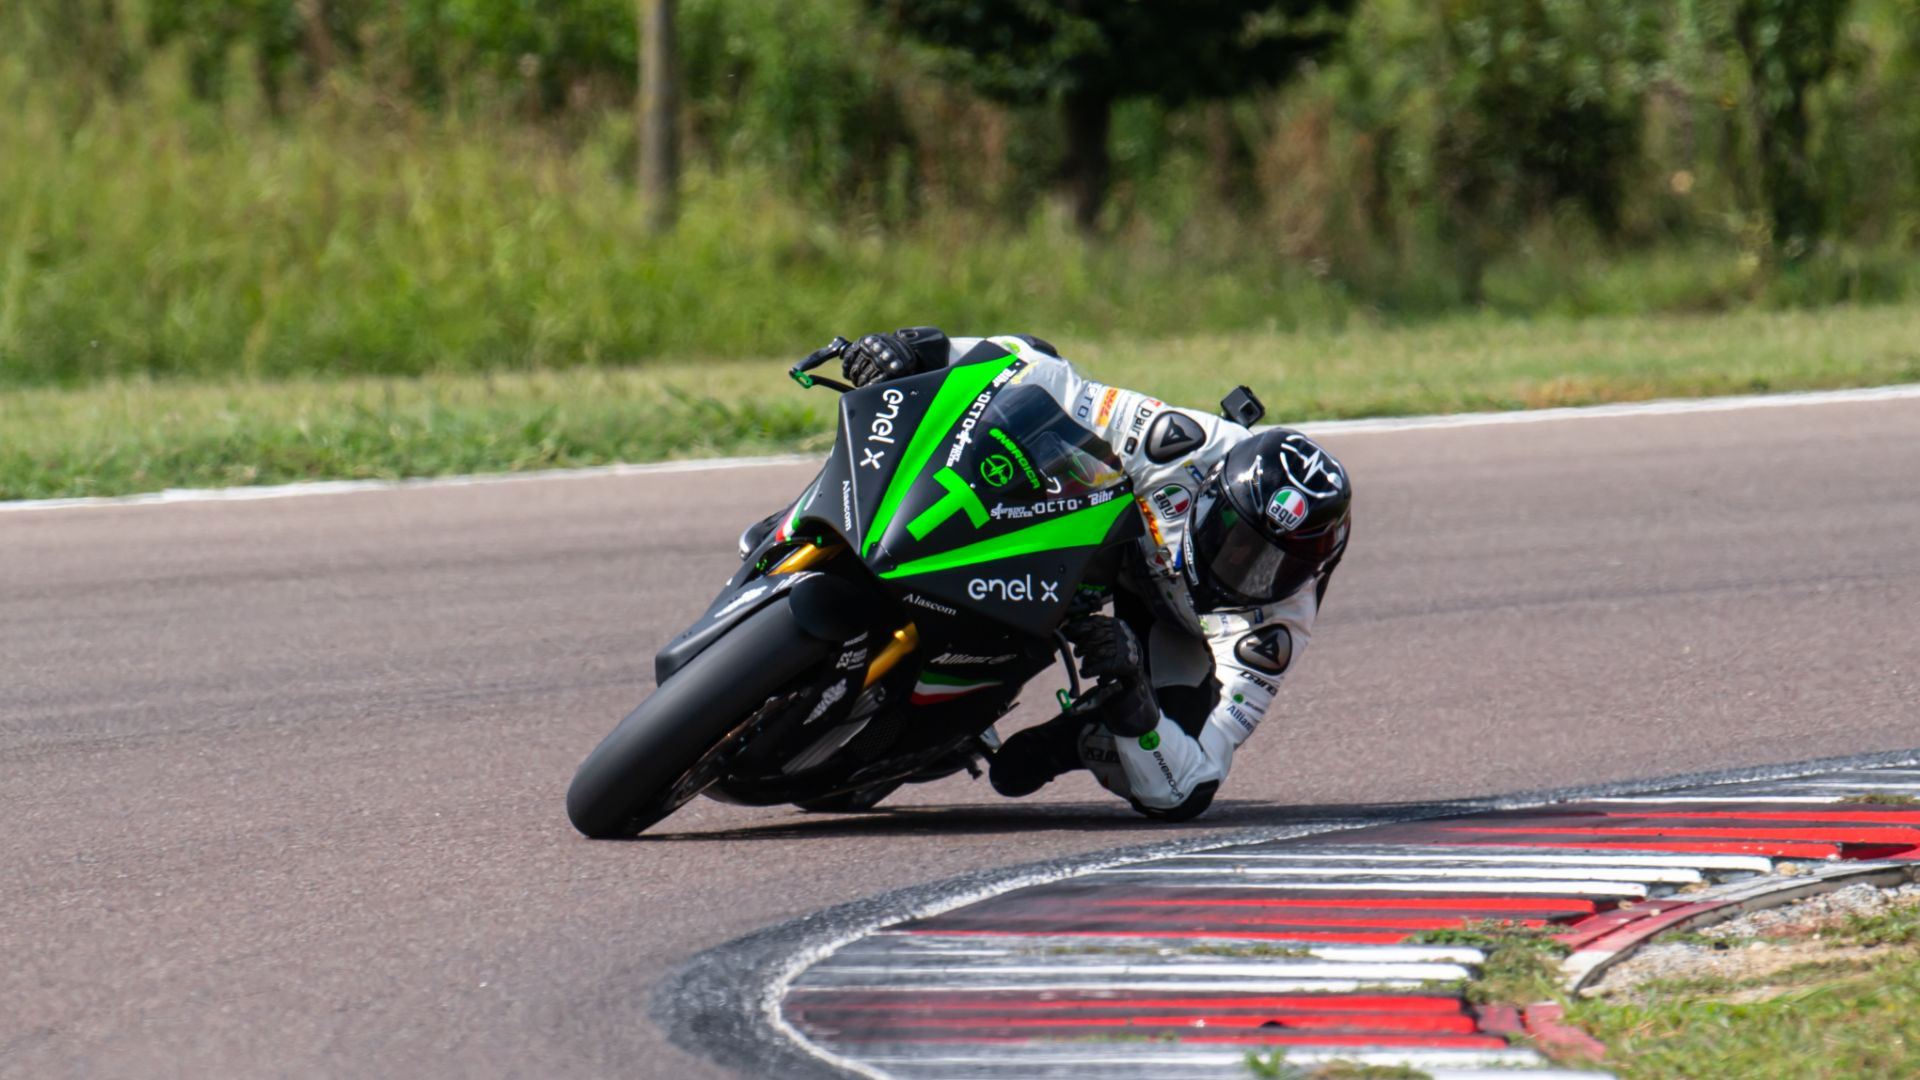 Energica Week 2021: a few days to the beginning of the first gathering of the Modena-based company.